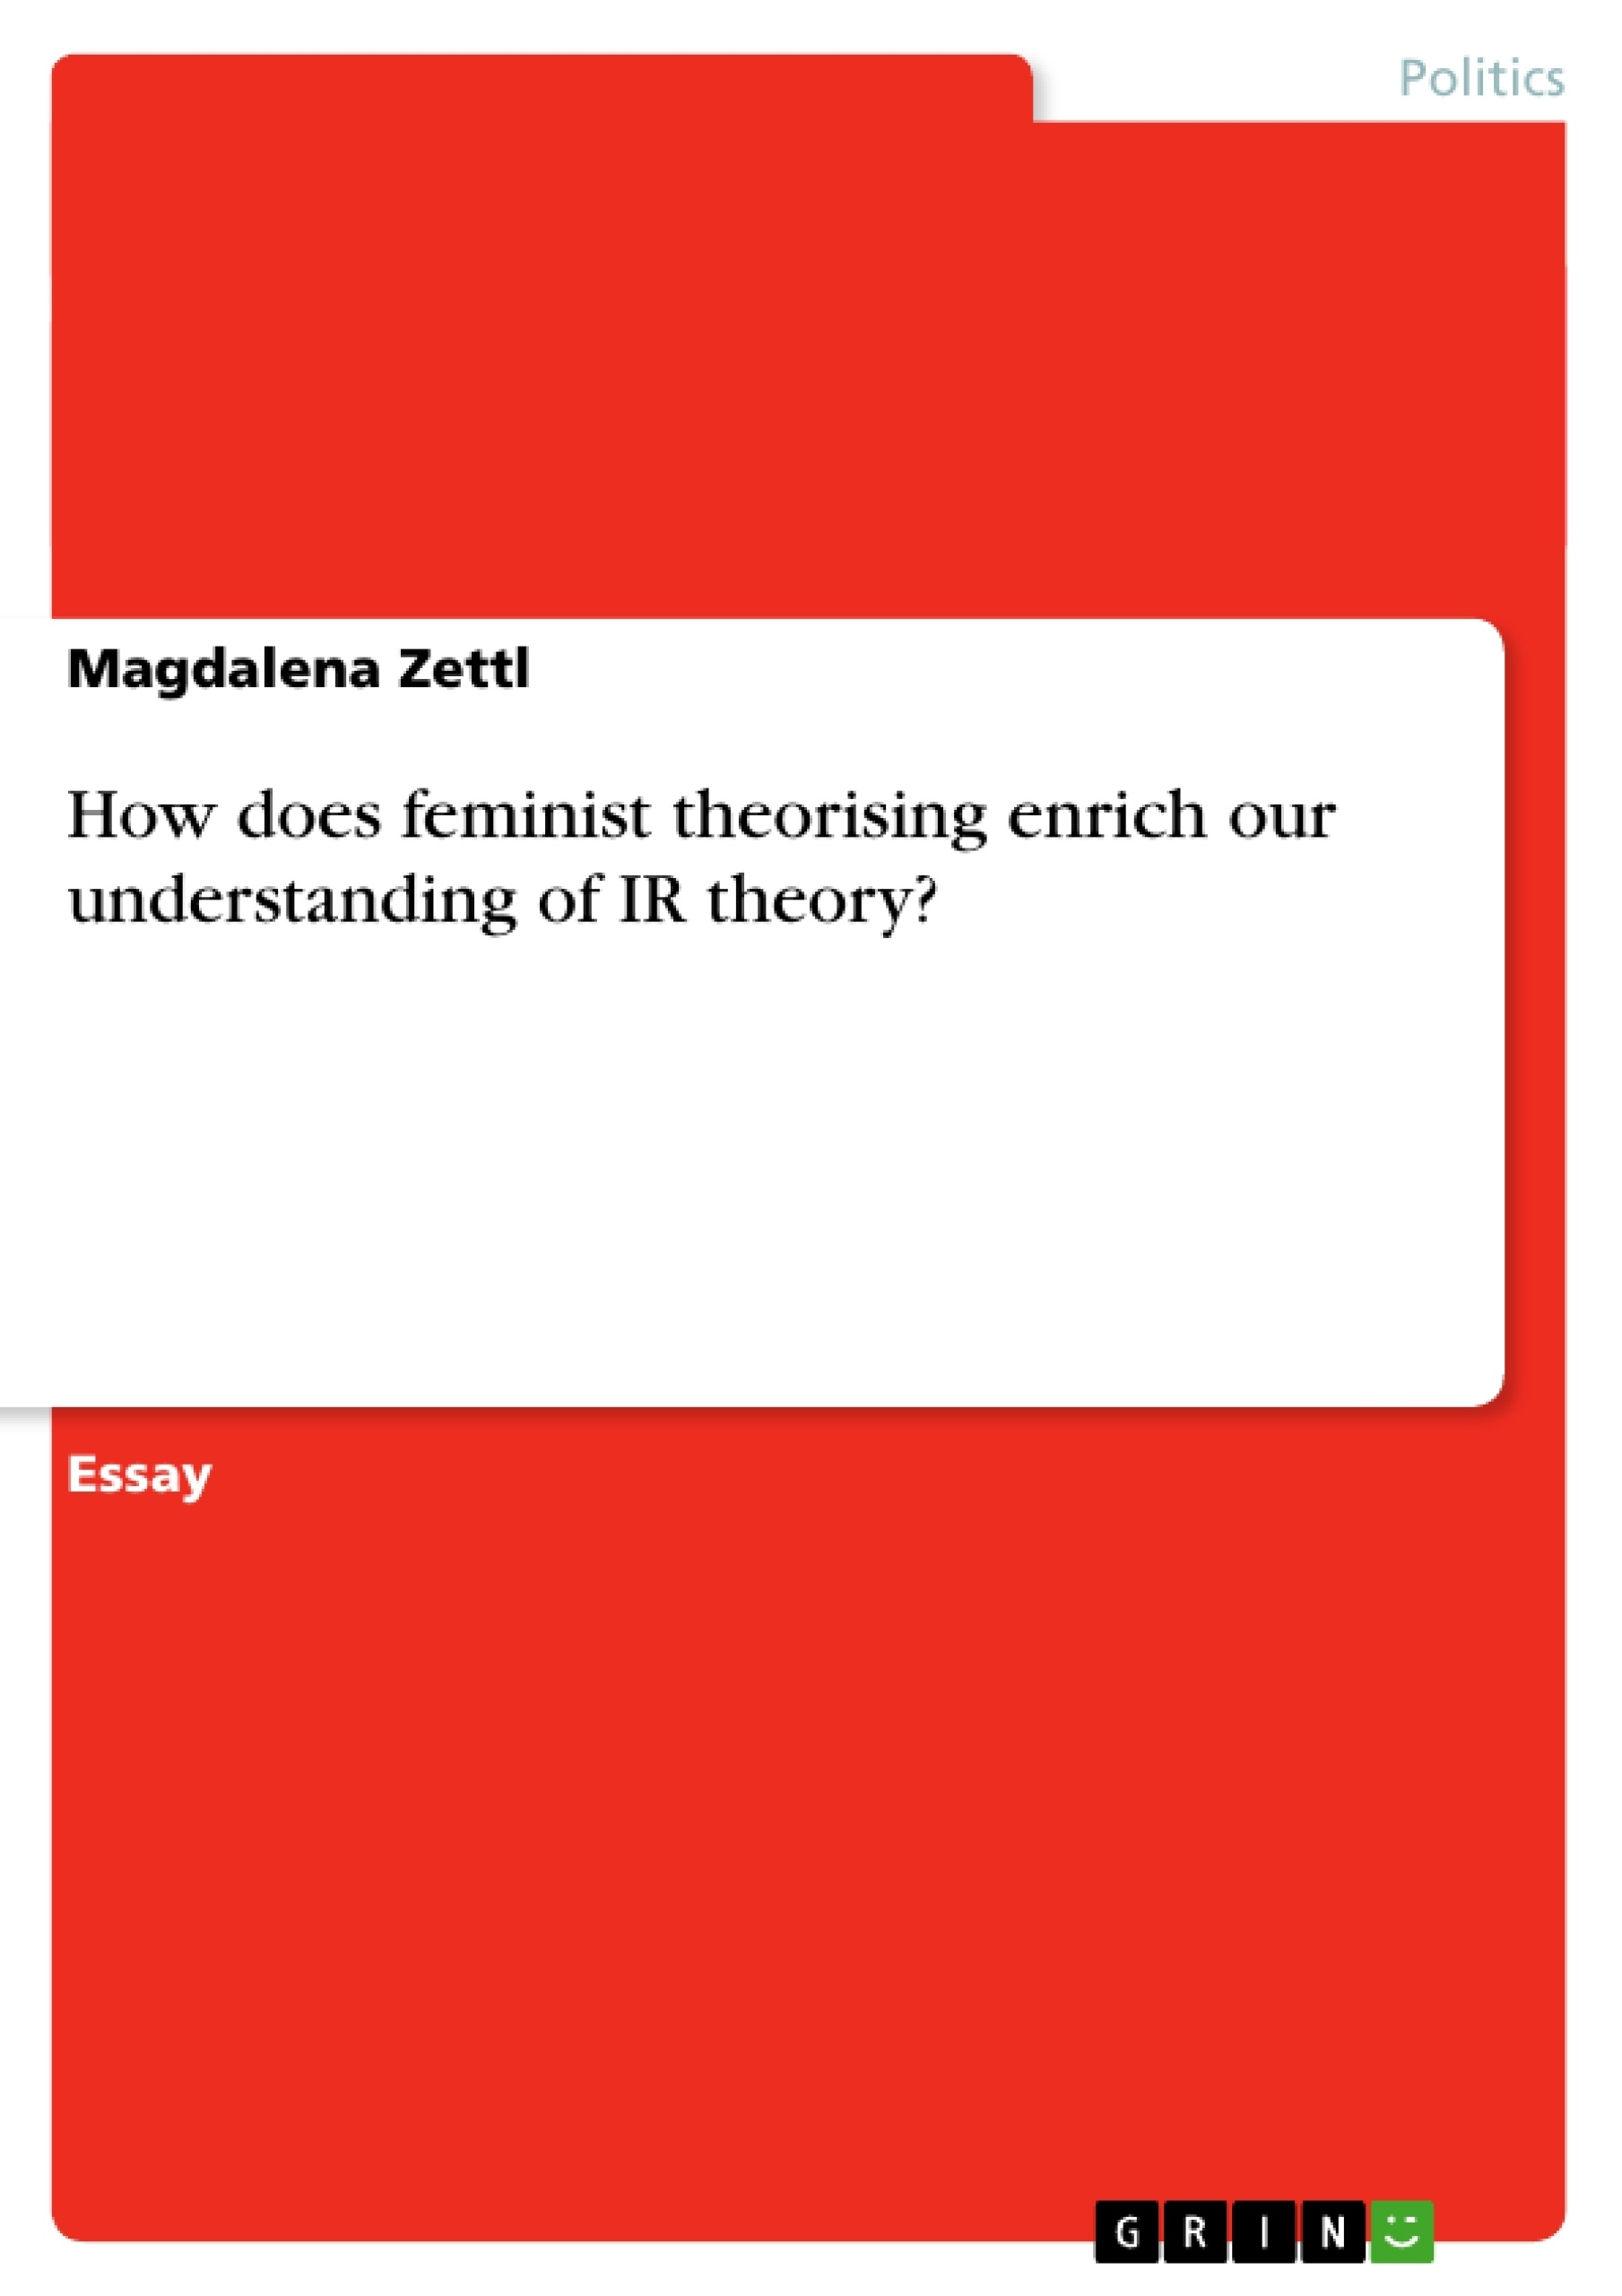 Title: How does feminist theorising enrich our understanding of IR theory?